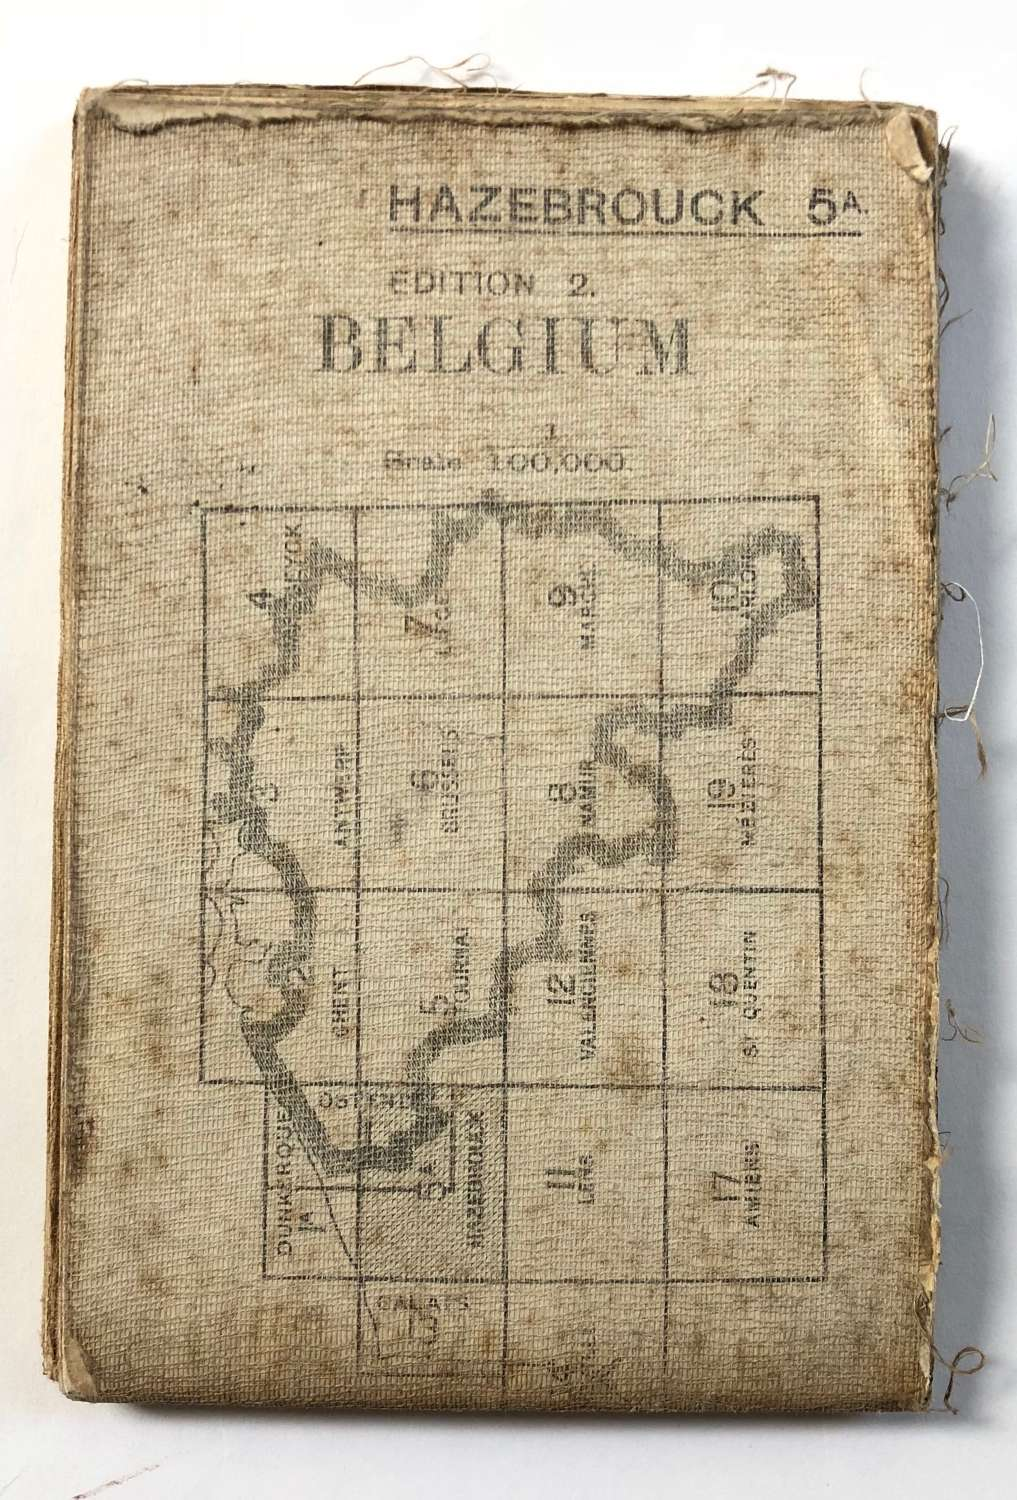 WW1 British Army 1916 Map. Belgium Hazebrouck 5A